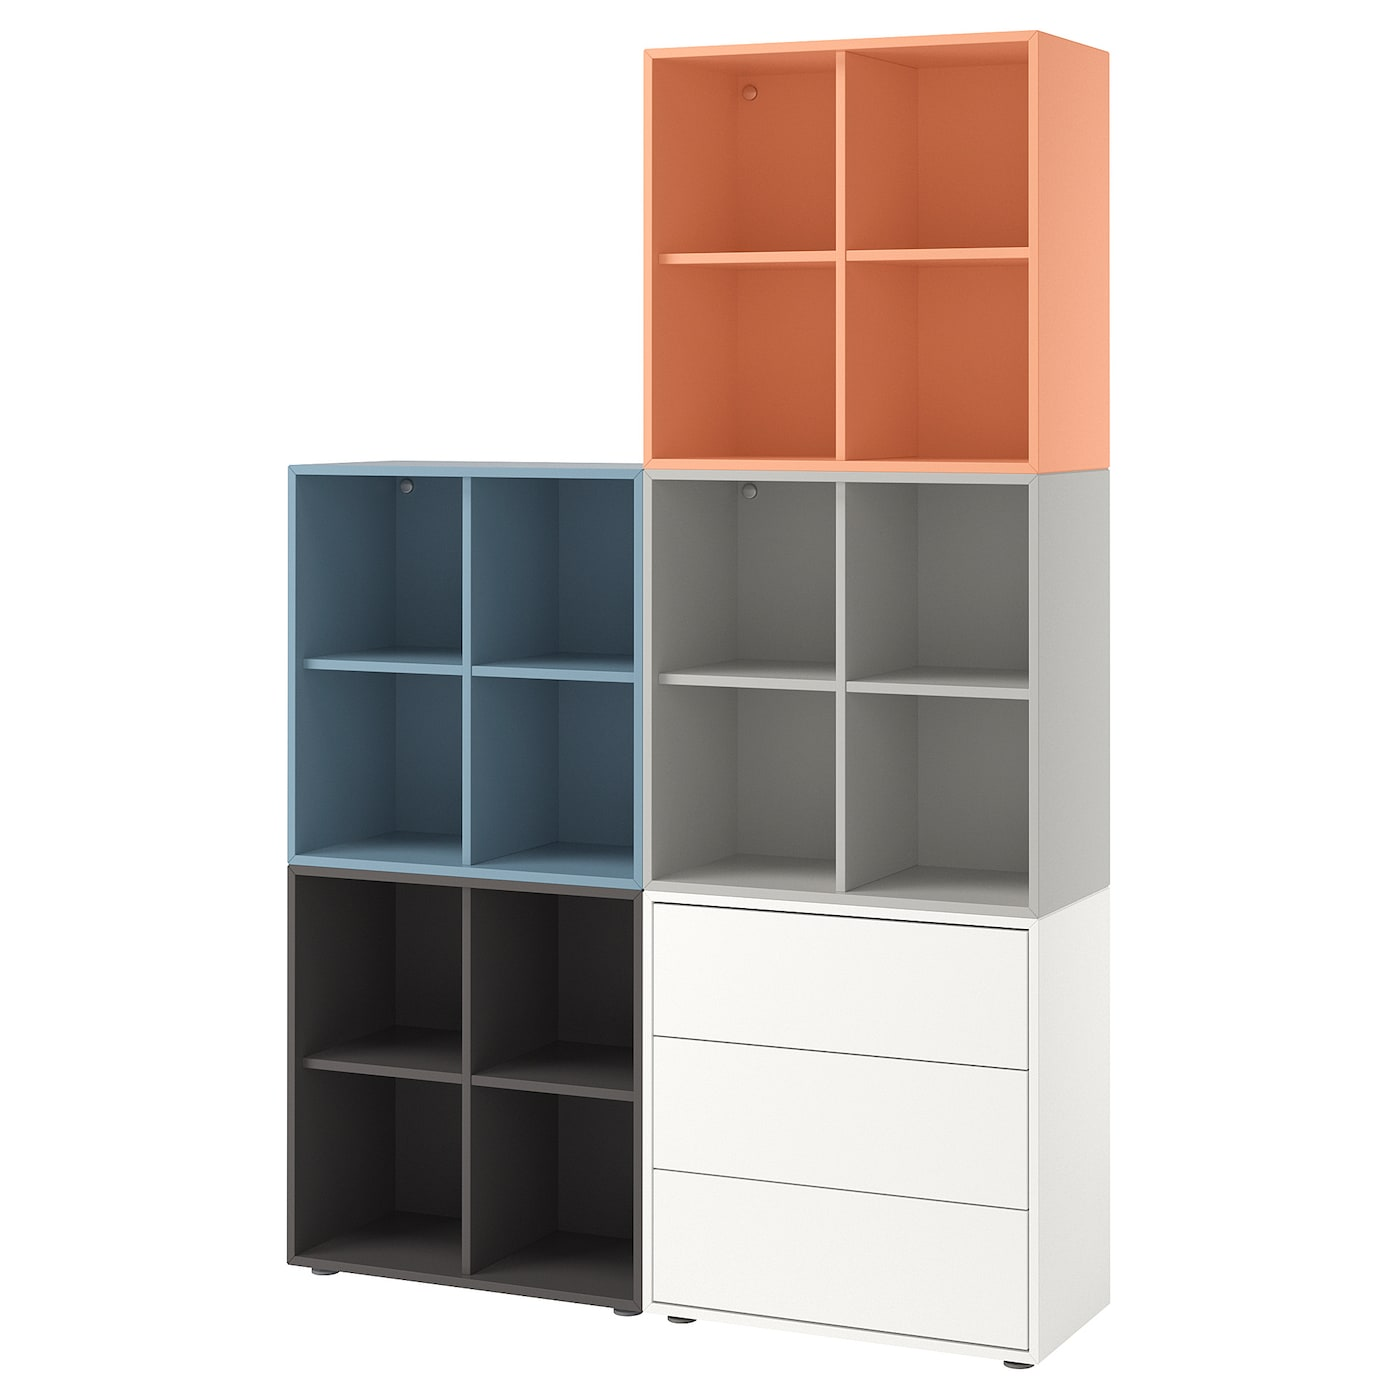 eket cabinet combination with feet multicolour 2 140 x 35 x 212 cm ikea. Black Bedroom Furniture Sets. Home Design Ideas